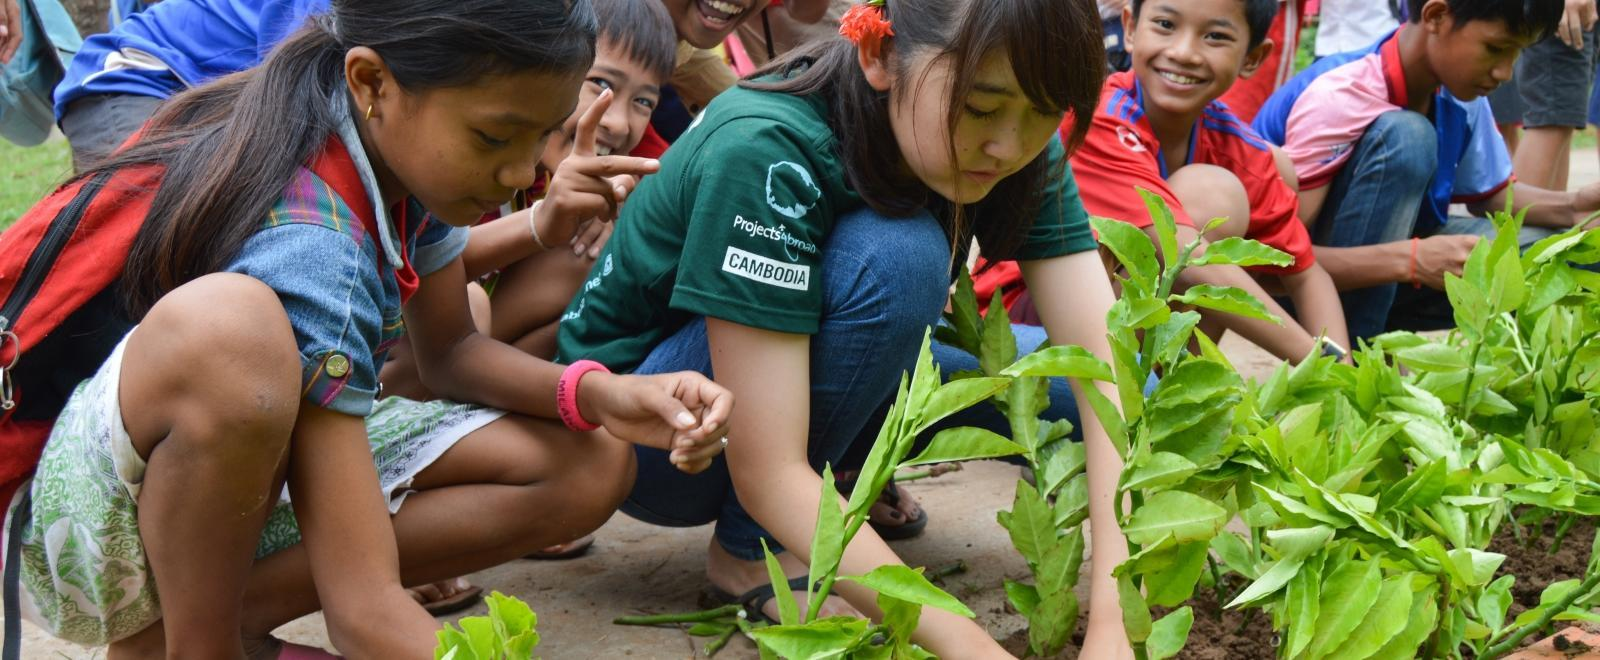 Besides childcare work in Cambodia, volunteers on a group trip will also help with light renovation work like planting a vegetable garden.